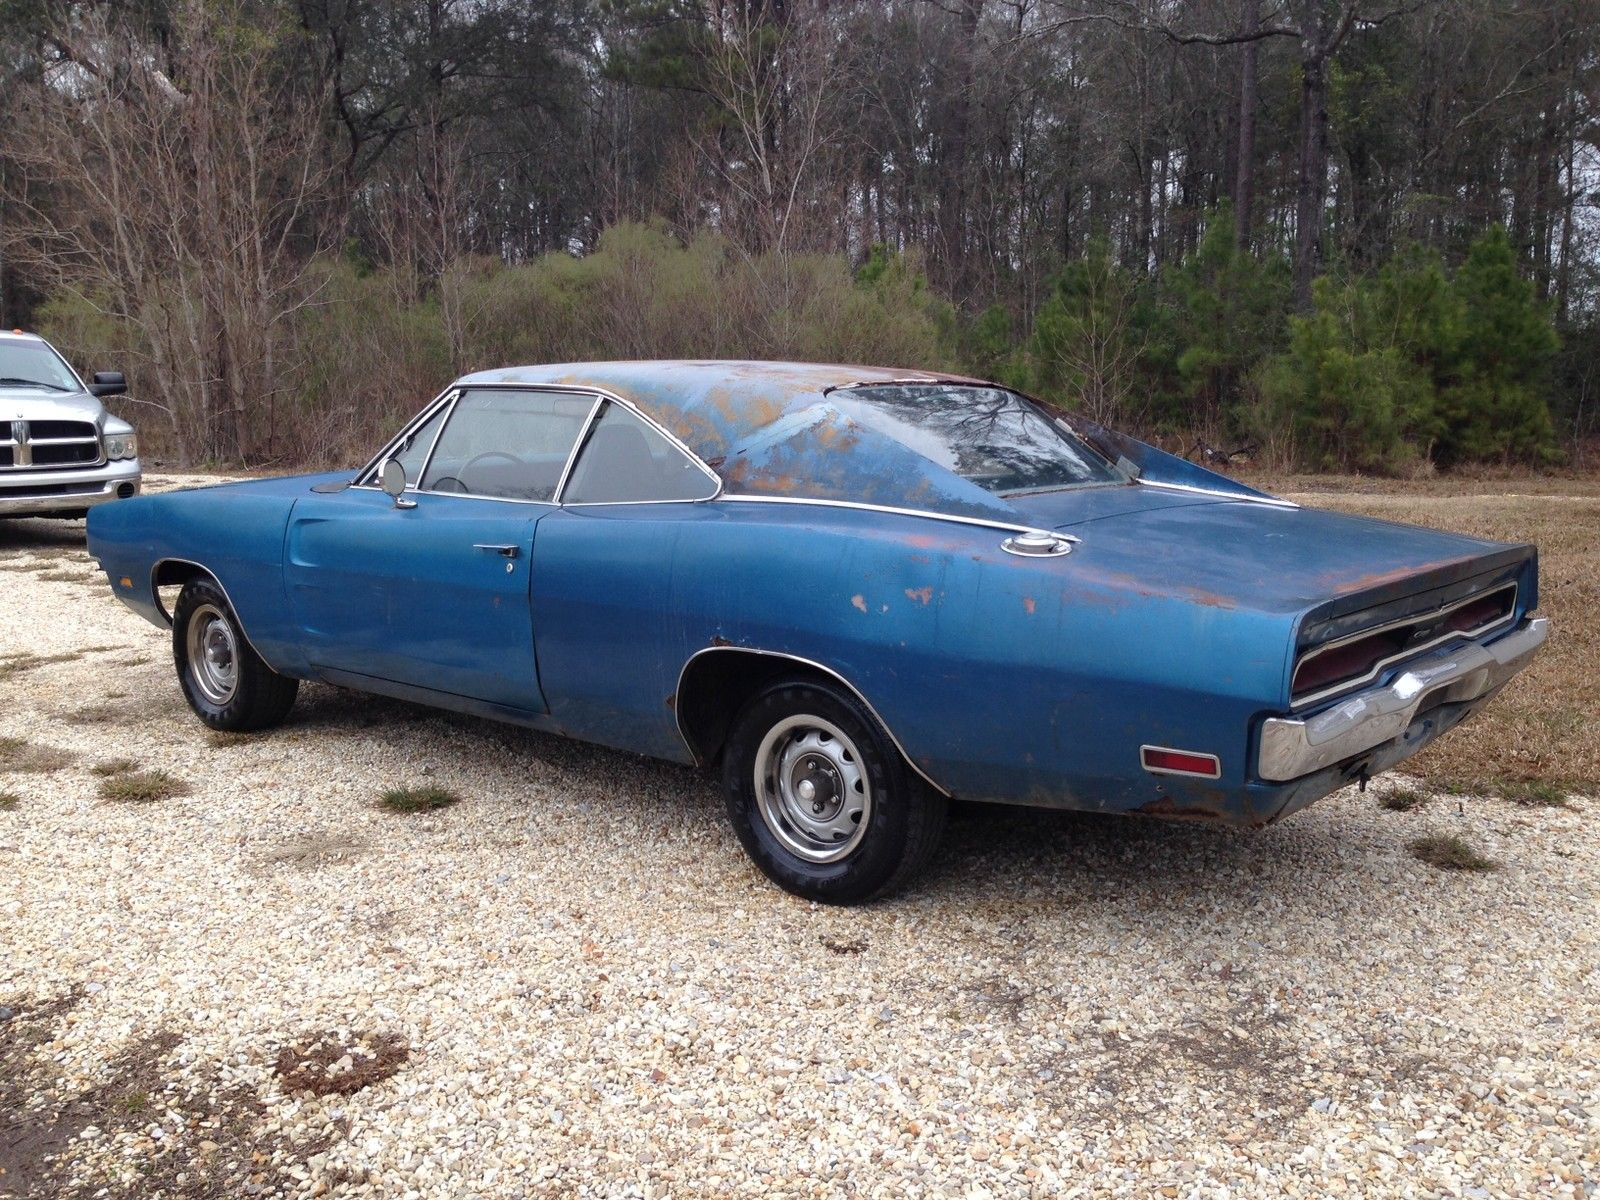 1970 Dodge Charger 500 318 Runs Drves Great Project Car